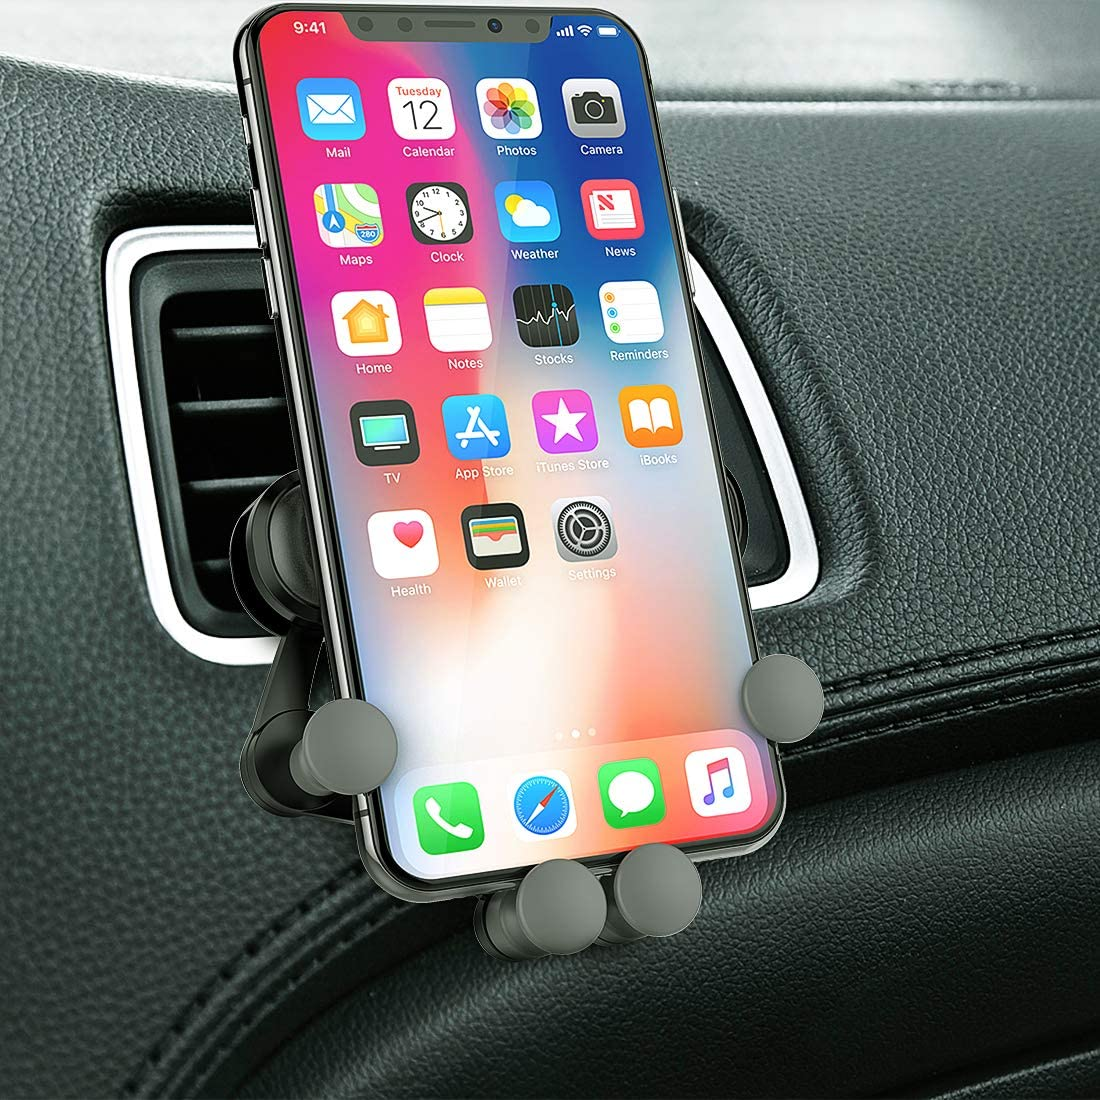 Galaxy s5//s6//s7//s8//s9 Smart Phone Car Phone Mount Air Vent Car Phone Holder Automatic Locking for Car Dashboard//Windshield//Air Vent Universal Phone Car Mount Compatible with iPhone x//8//7//7p//6s//6p//5s